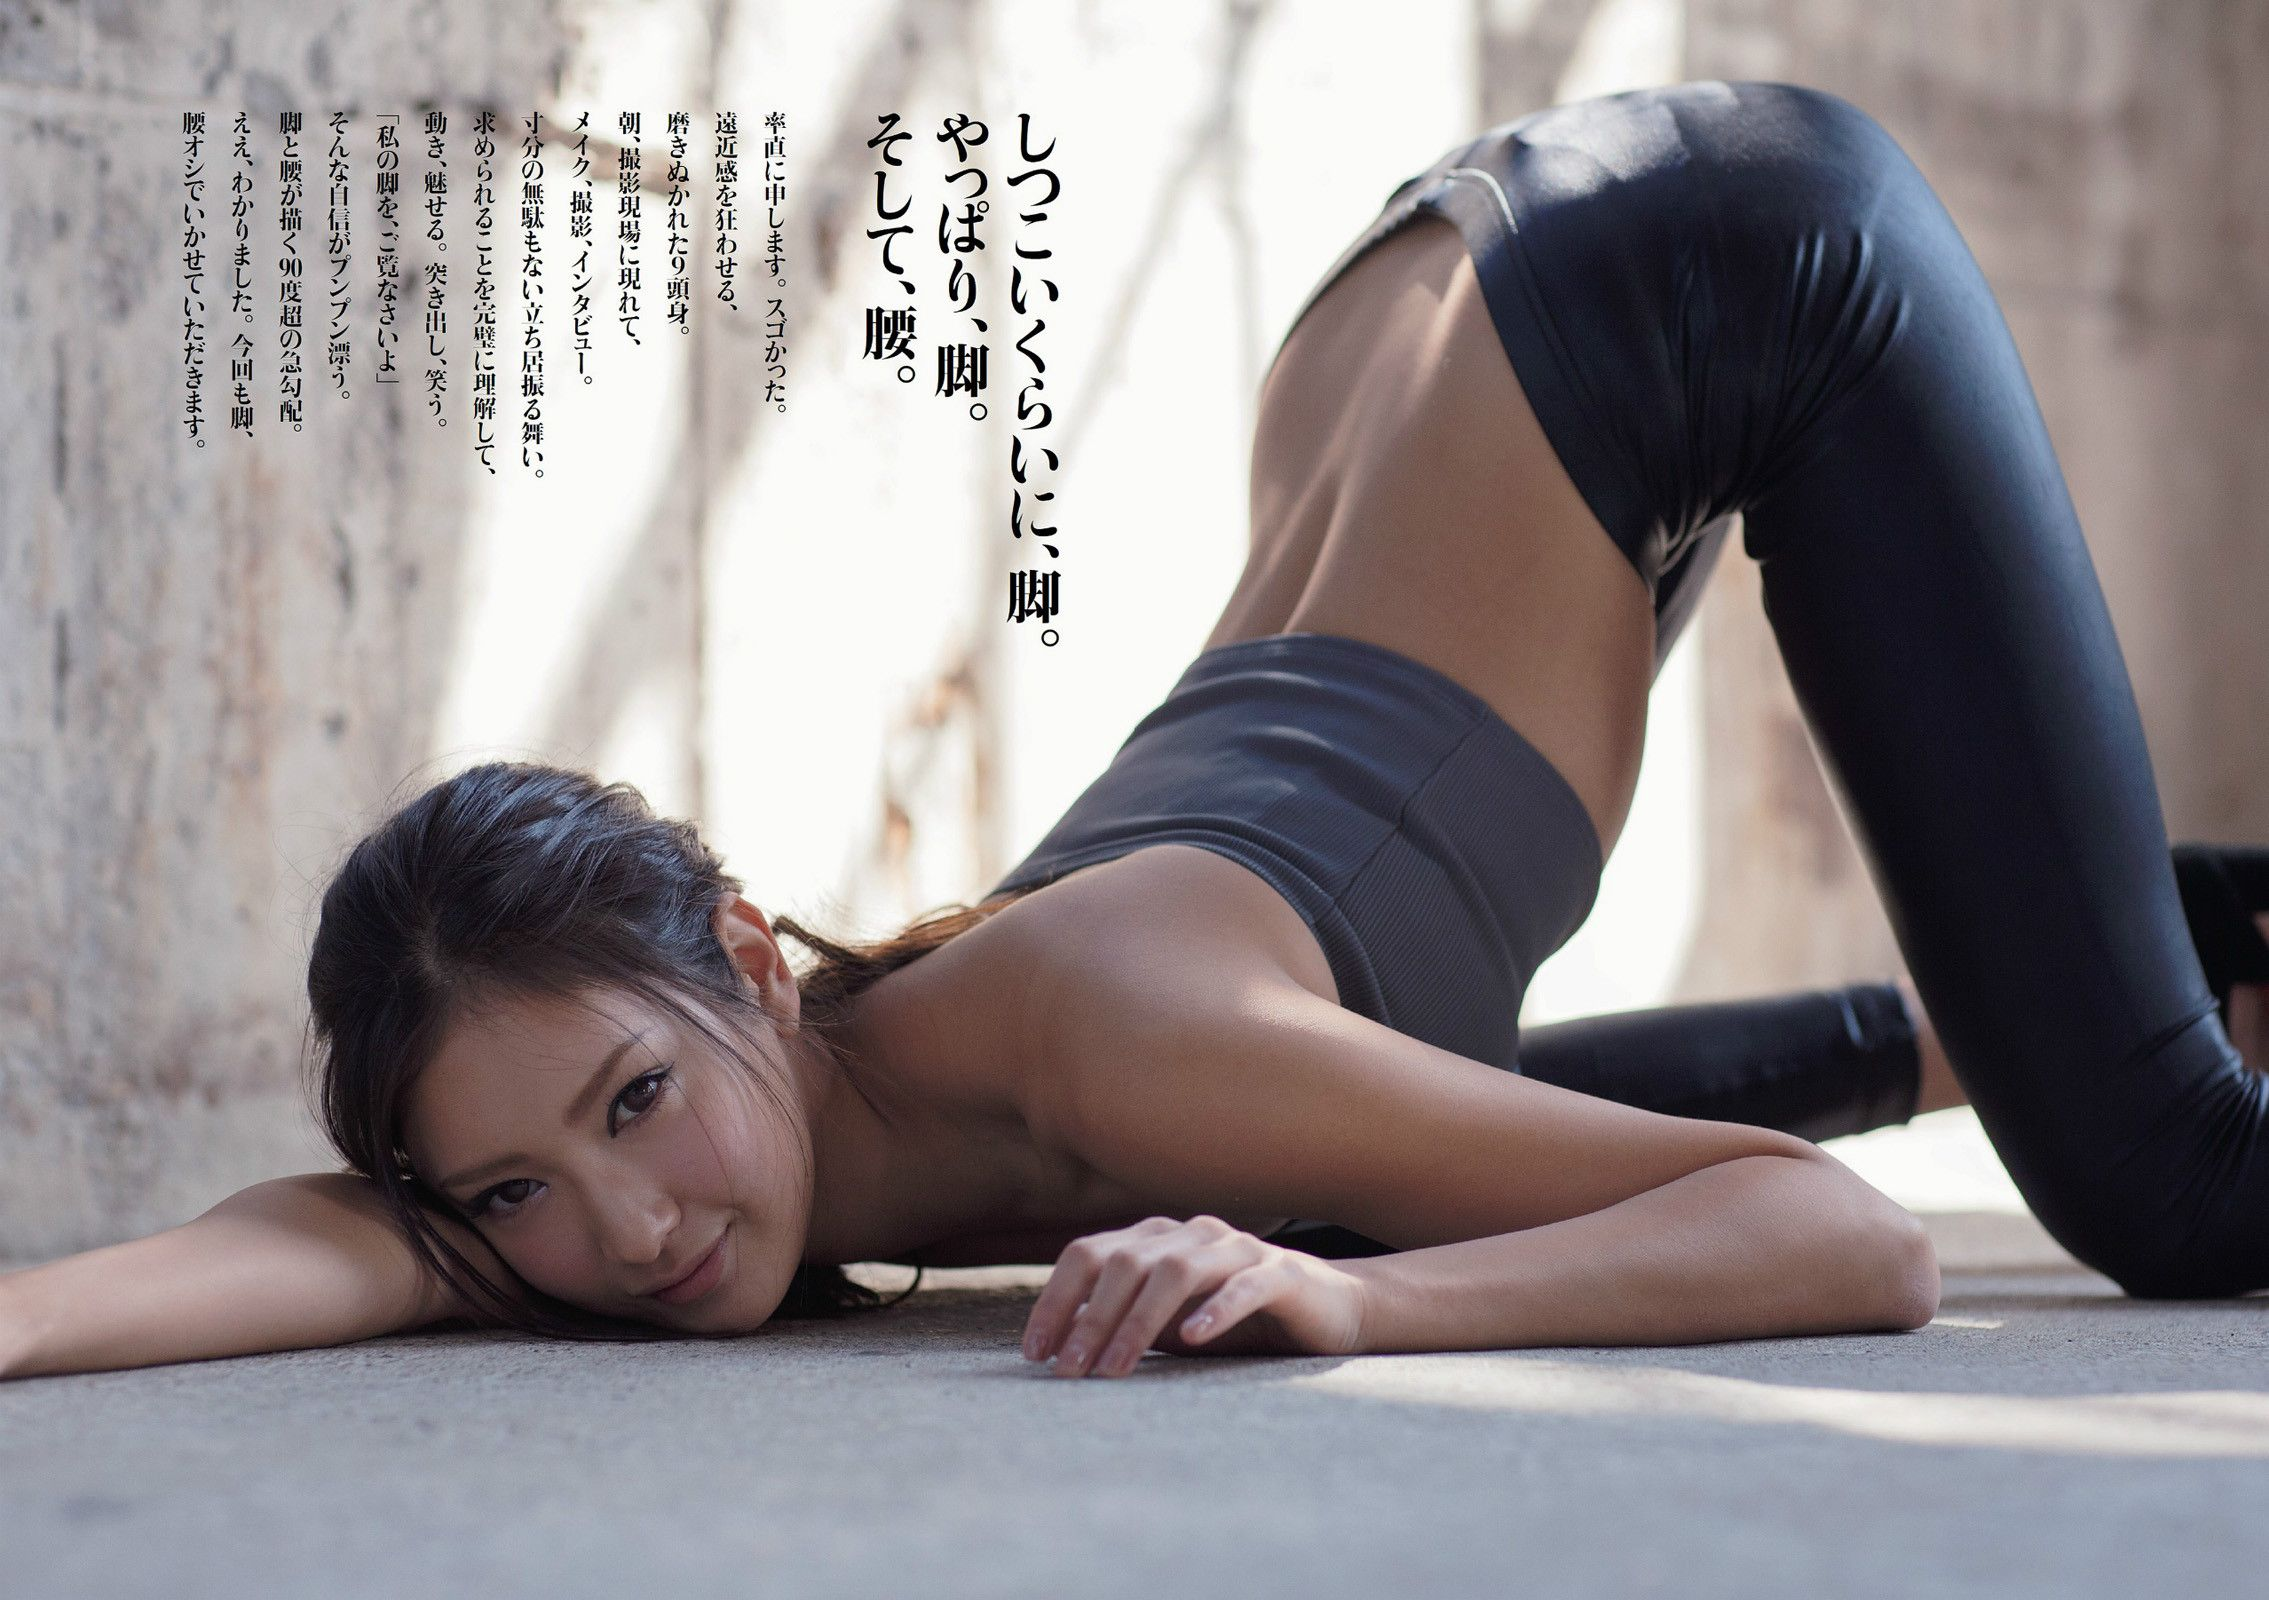 And the asian woman face down